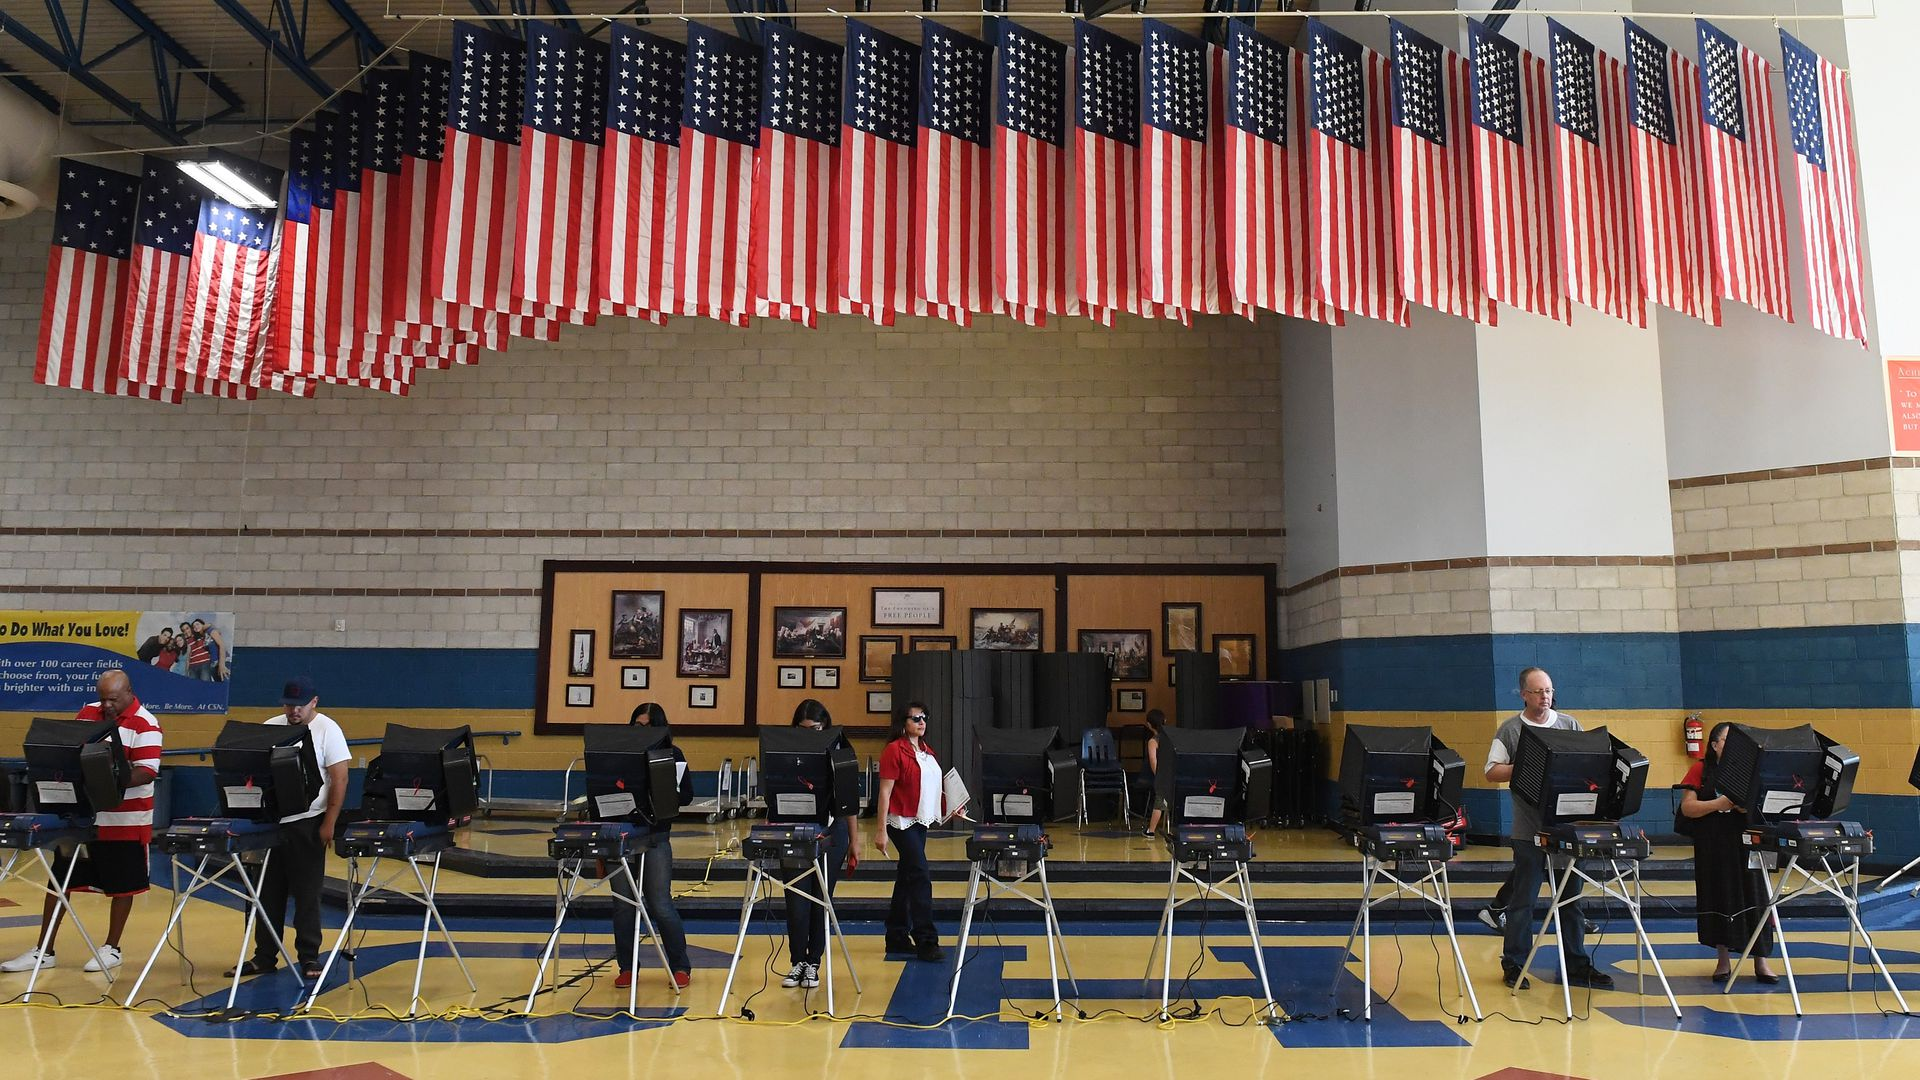 Voters cast their ballots at voting machines at Cheyenne High School on Election Day on November 8, 2016 in North Las Vegas, Nevada.